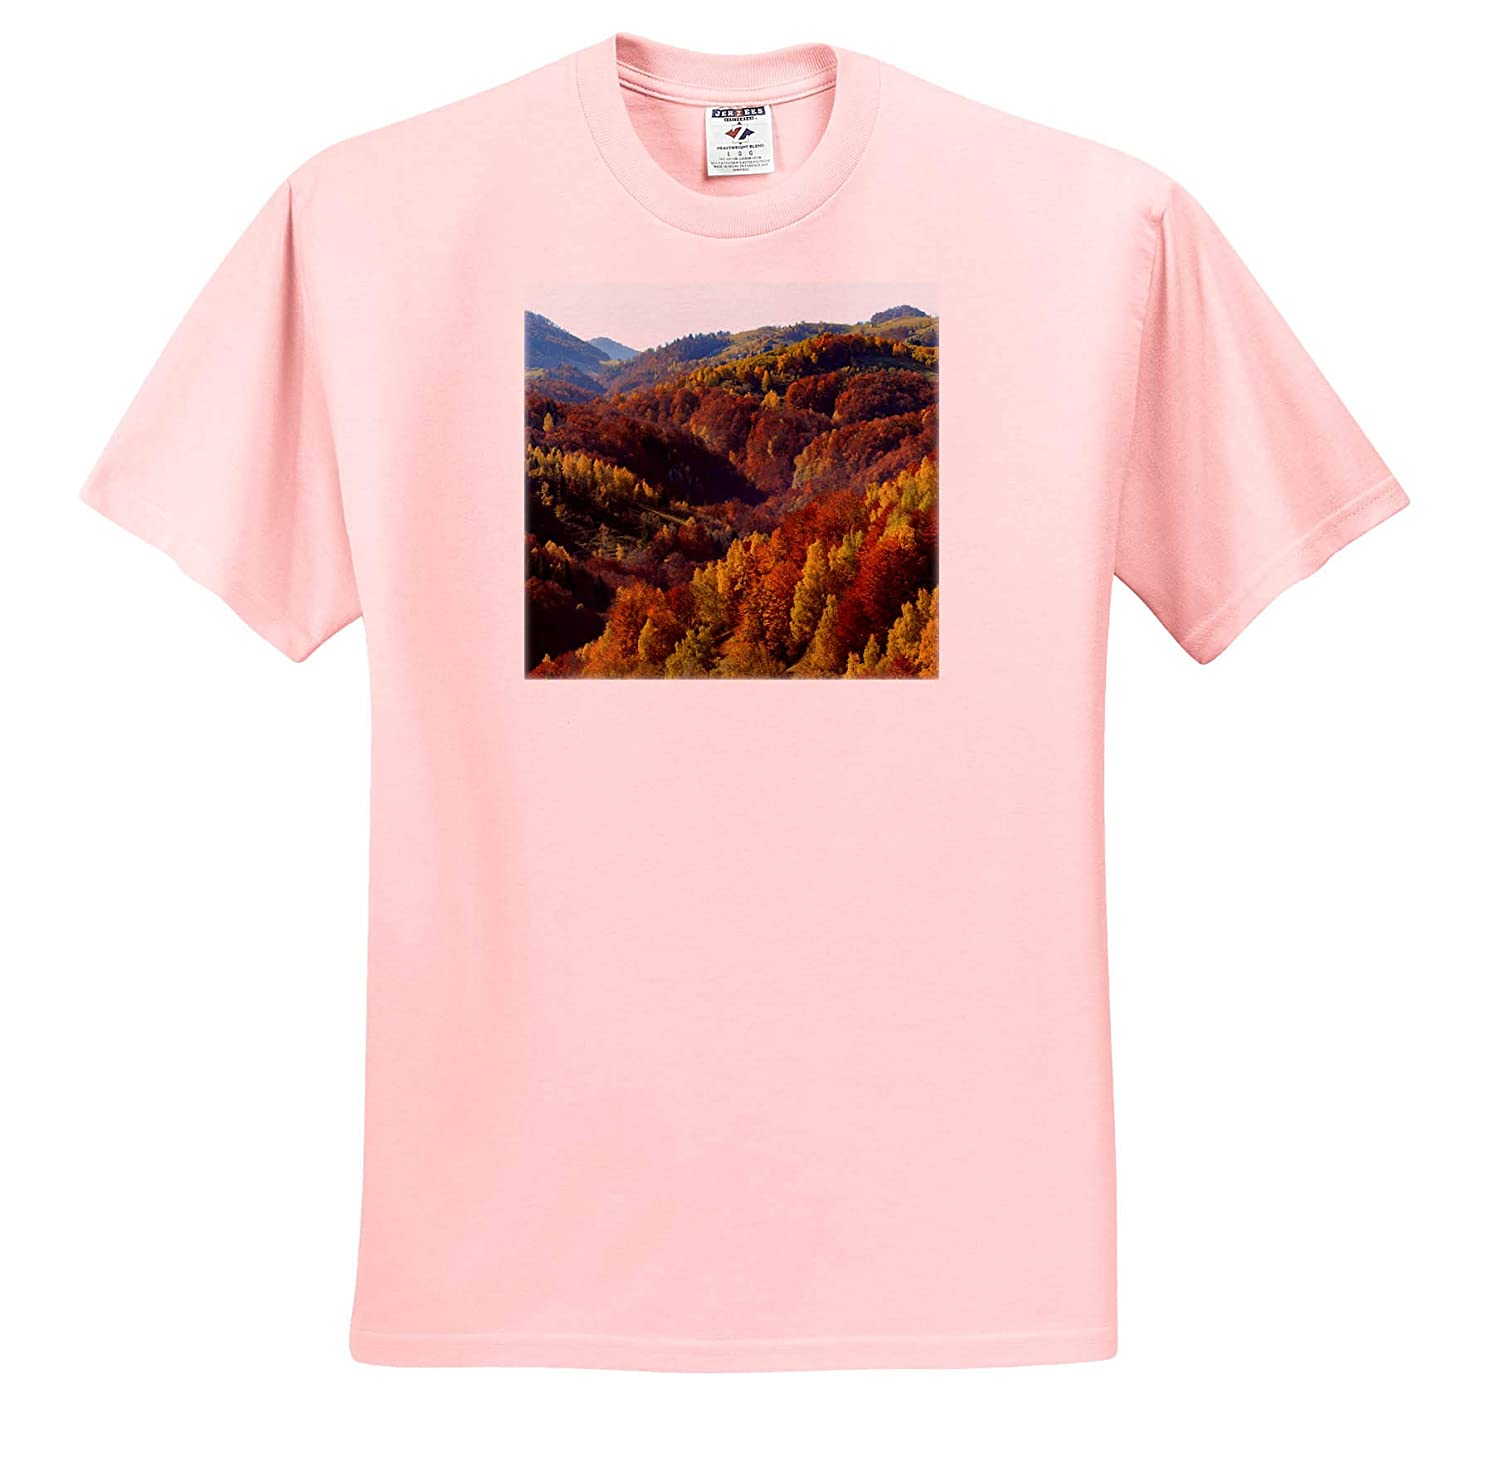 ts/_313841 - Adult T-Shirt XL Romania Transylvania 3dRose Danita Delimont Fall Colors Romania Carpathian Mountains